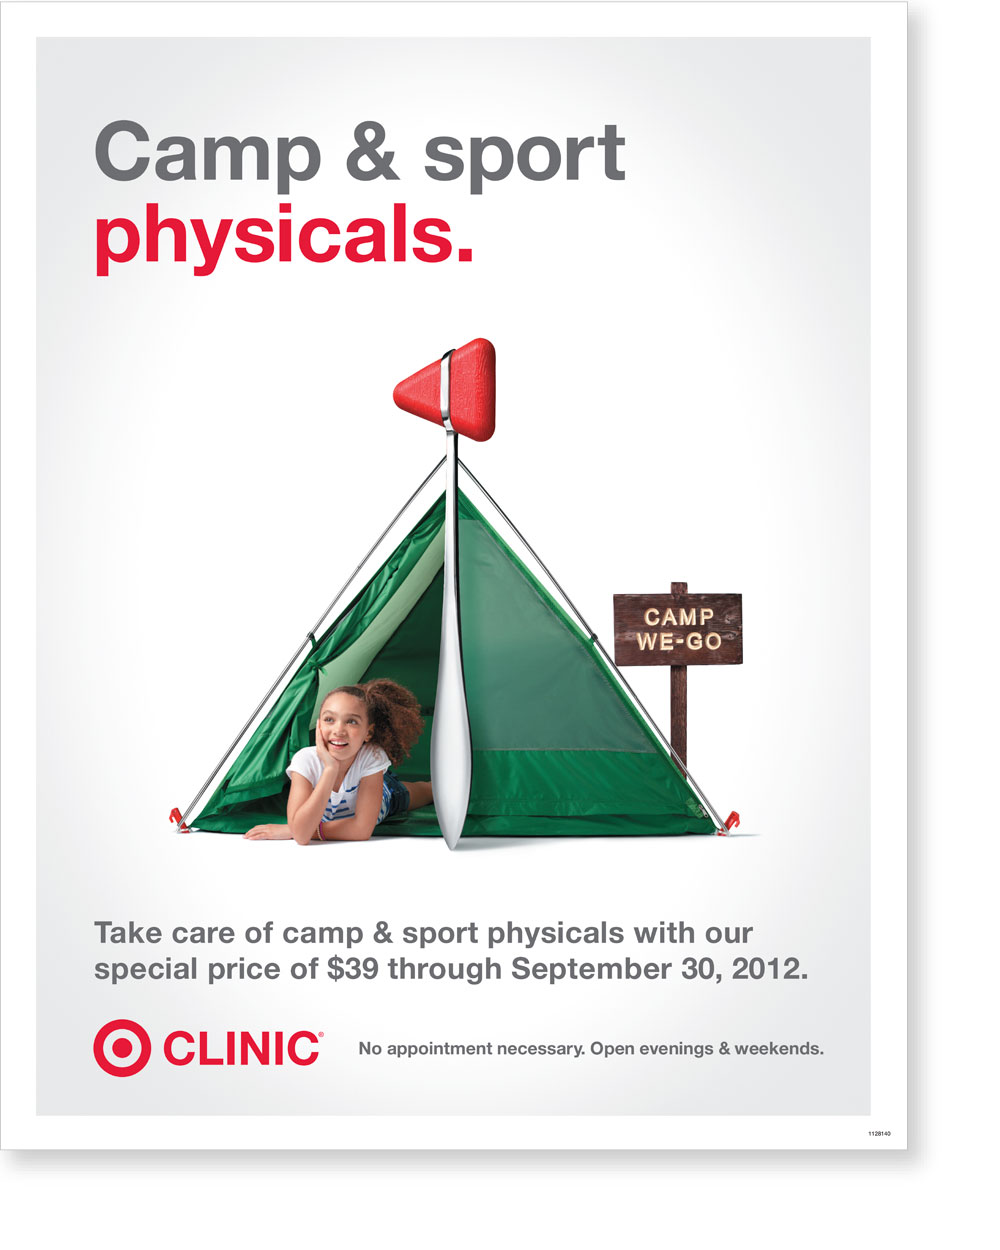 Target Clinic Stanchion Physicals